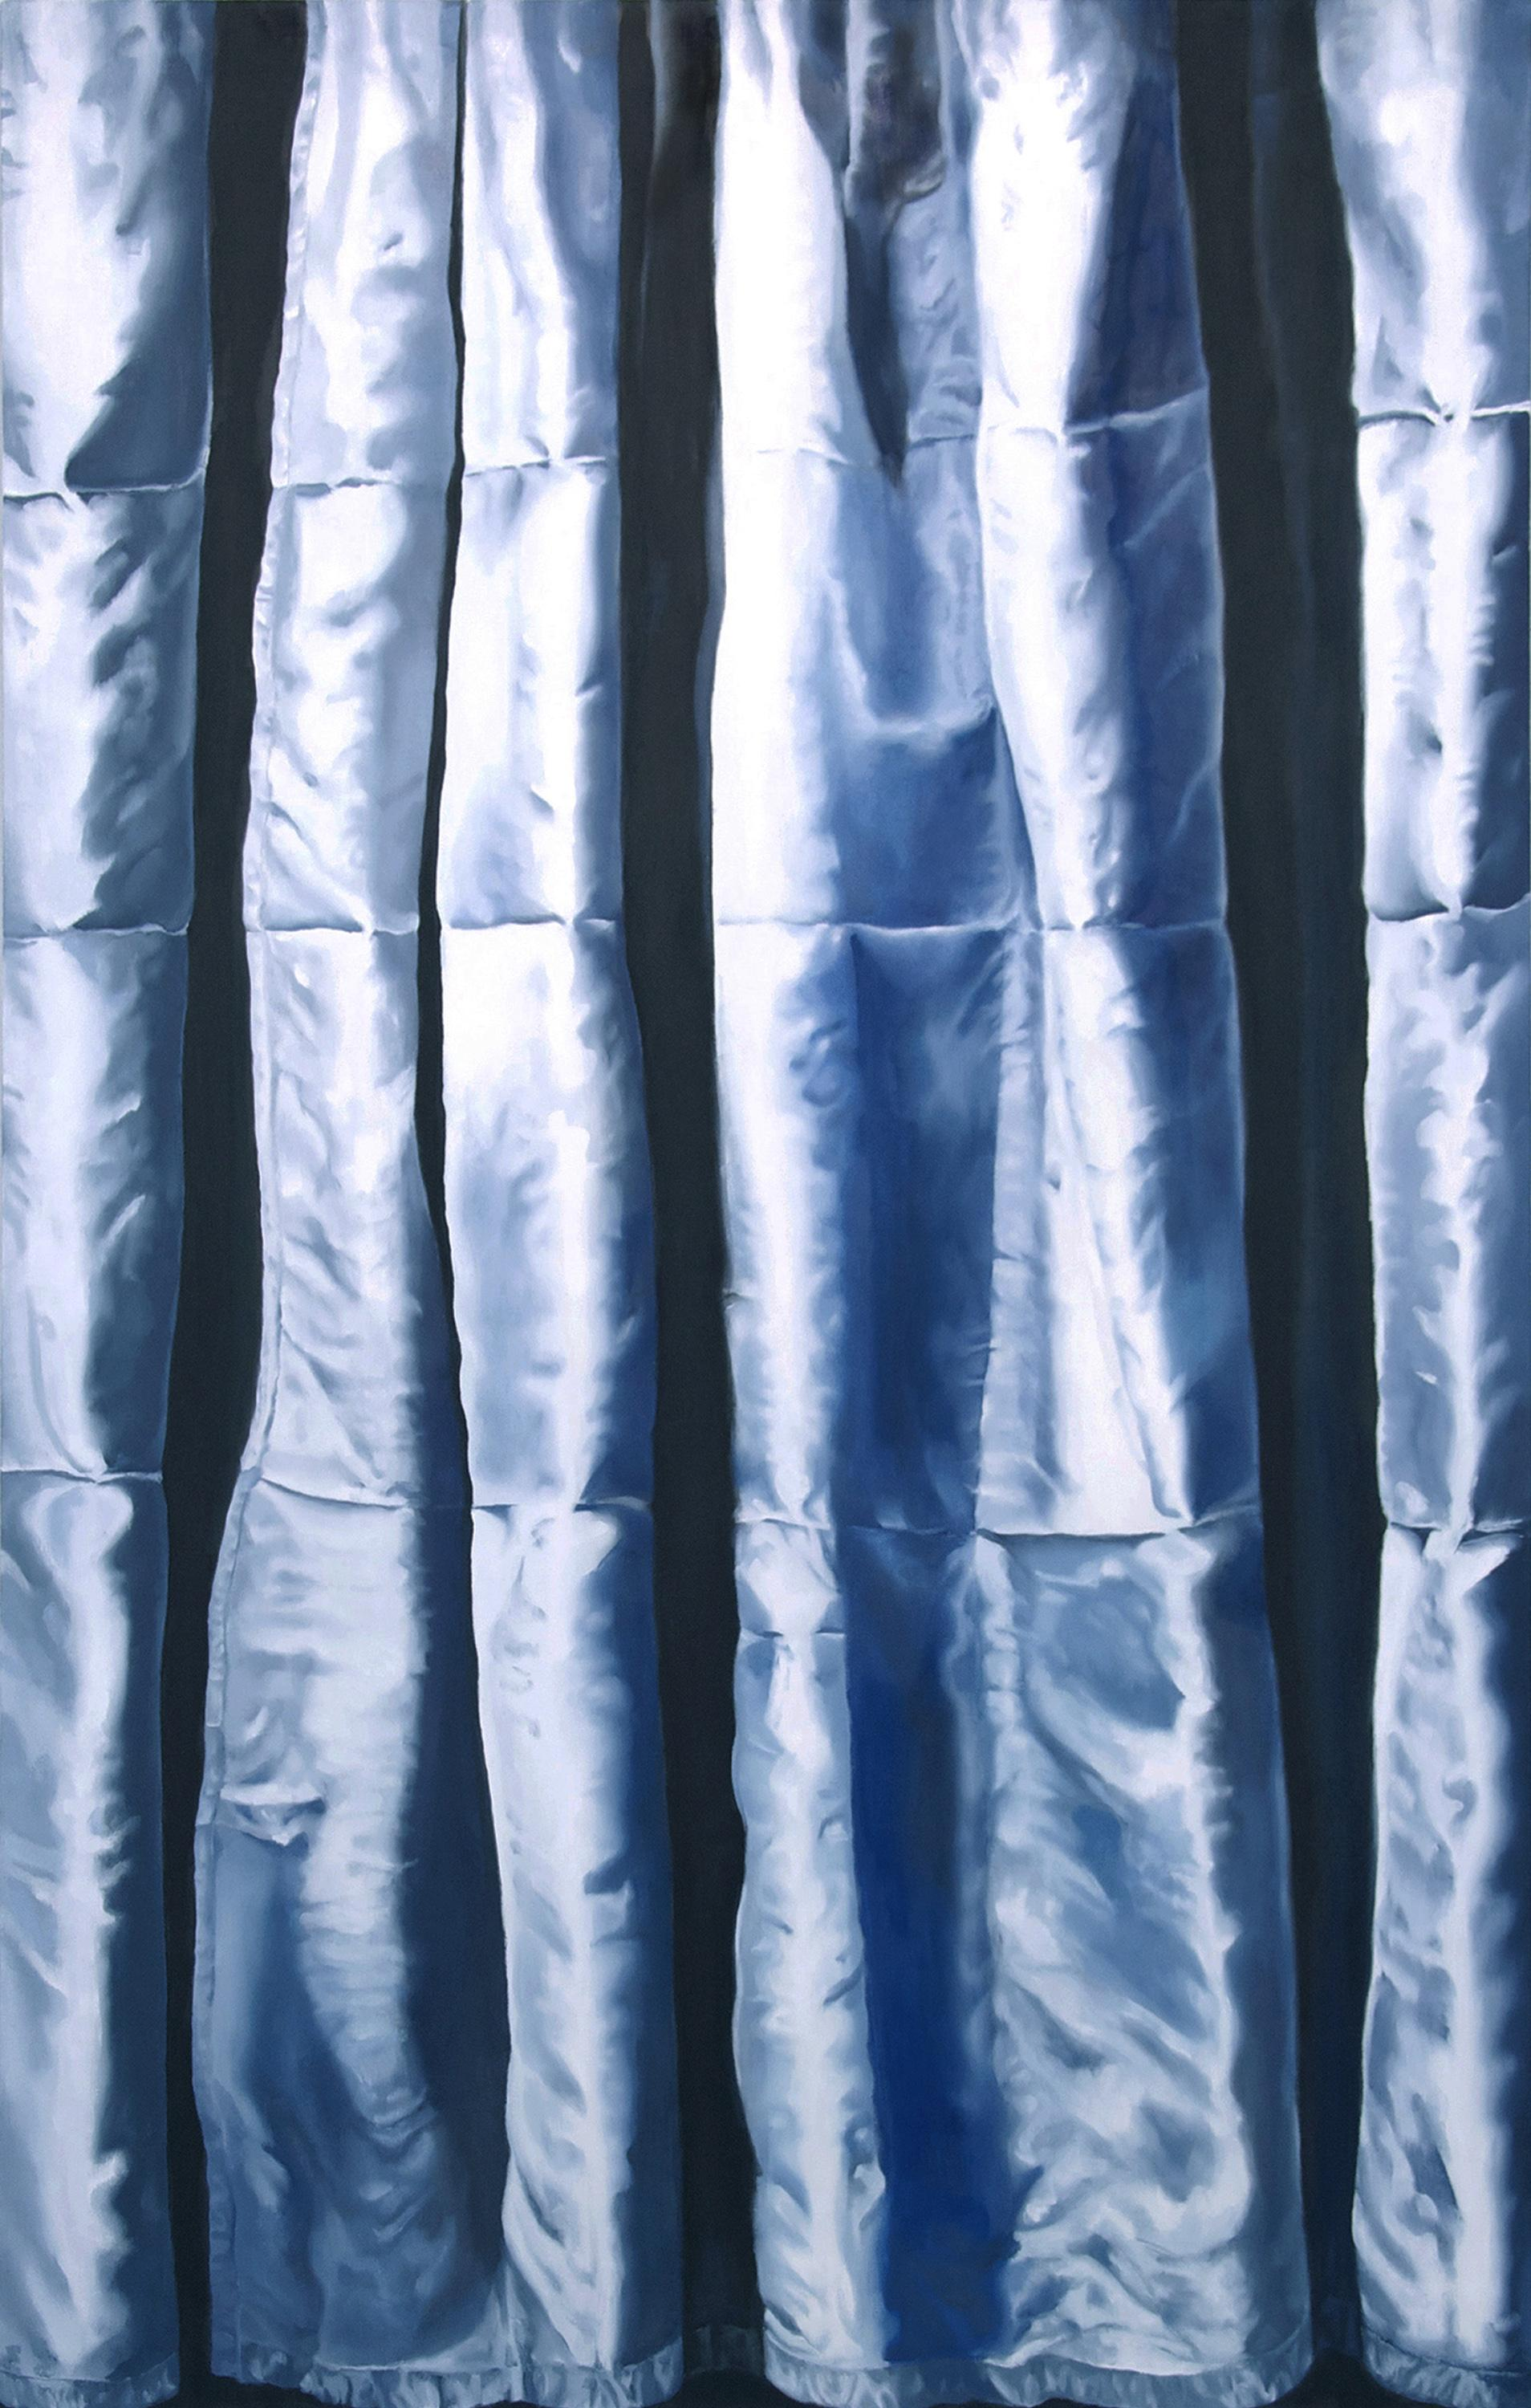 A vertical painting portrays a close-up view of a light blue, satiny fabric.